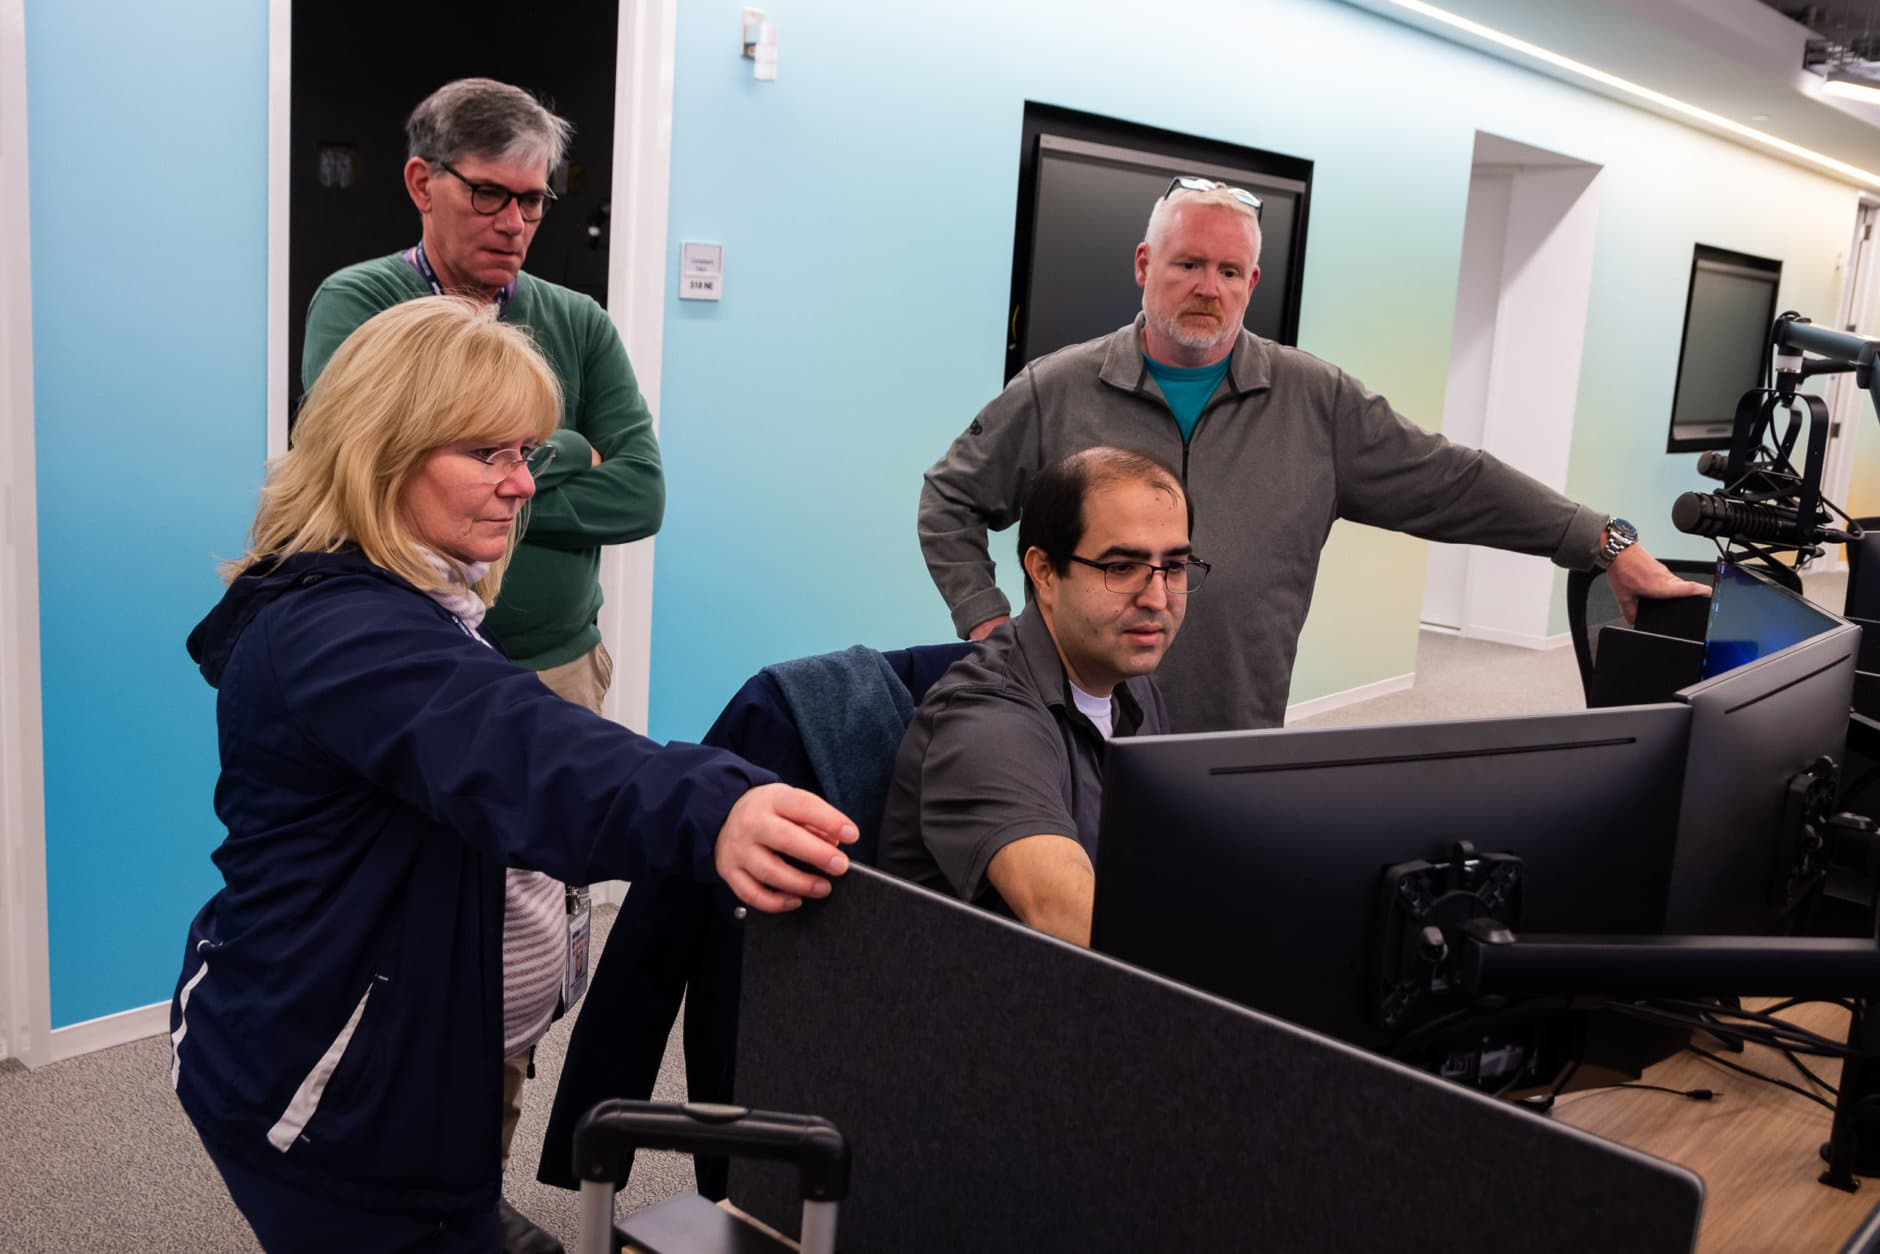 WTOP reporter Mike Murillo (center) leads WTOP's morning traffic team (from left, Mary de Pompa, Ian Crawford and Jack Taylor) through a demonstration of the newsroom's new virtual system for taking listener phonecalls. (WTOP/Alejandro Alvarez)